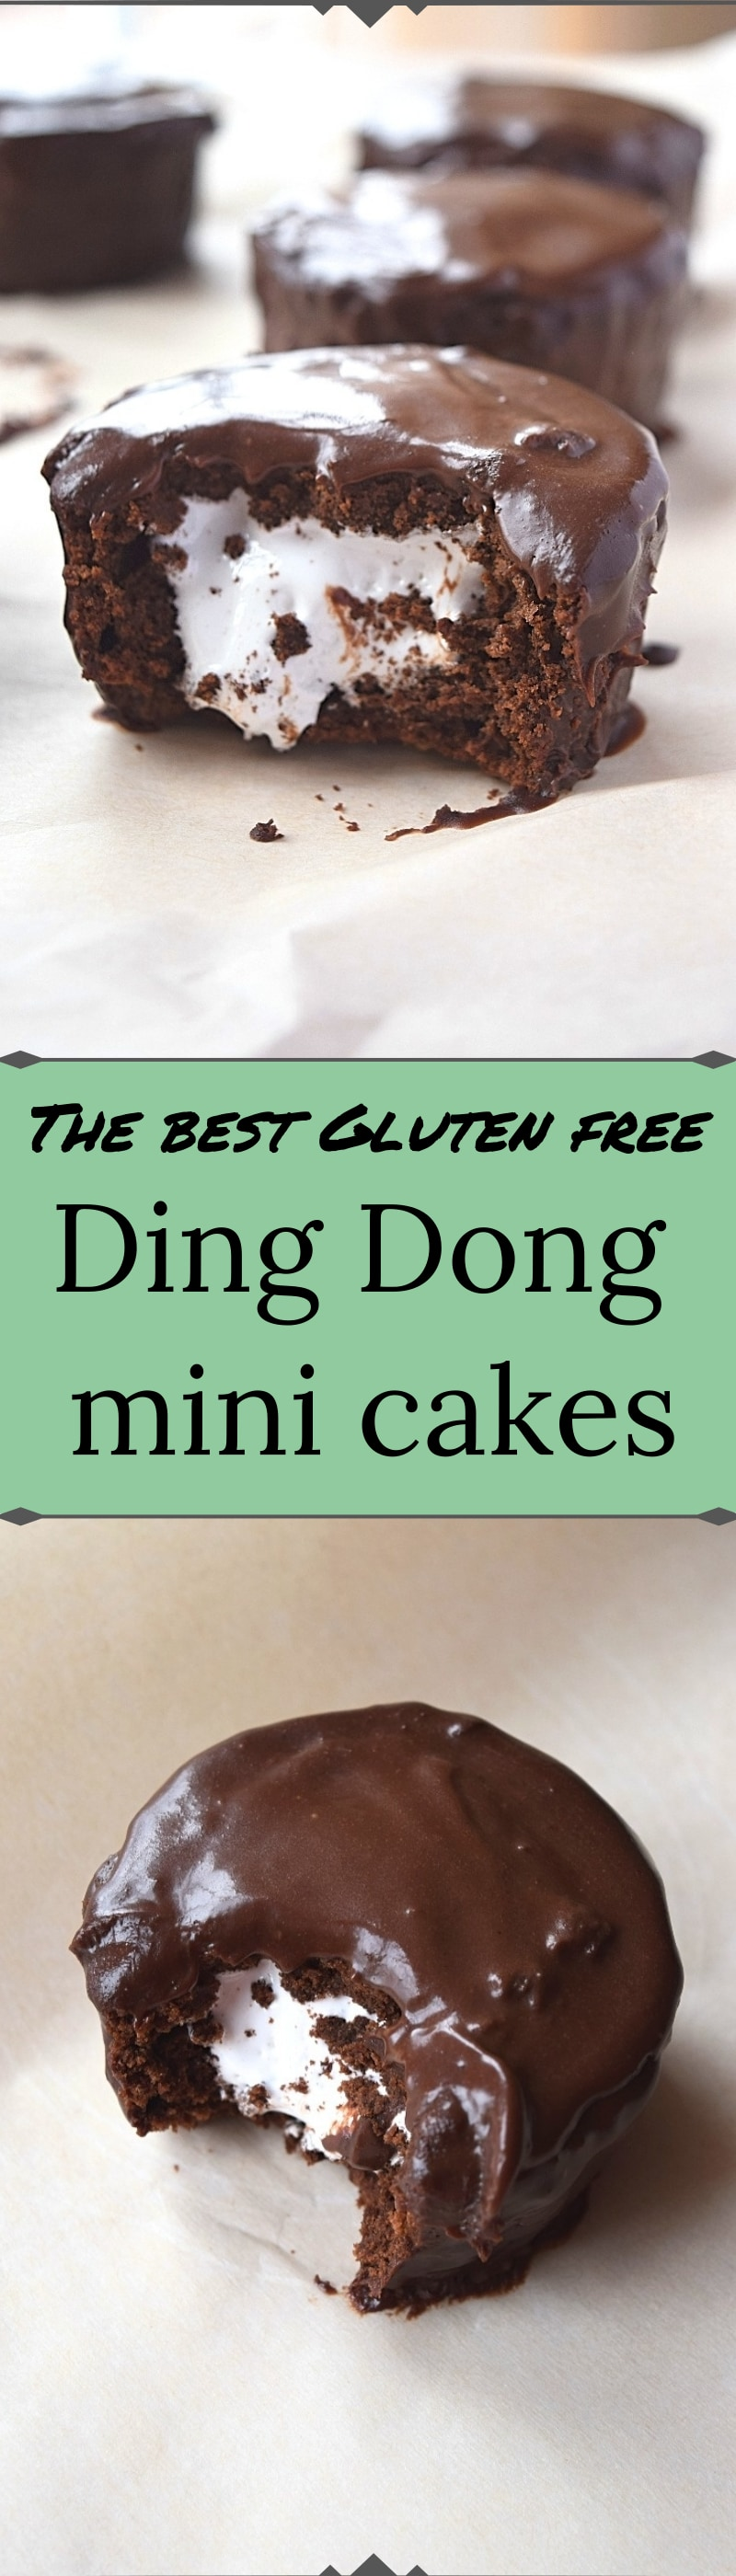 Gluten Free Ding Dongs